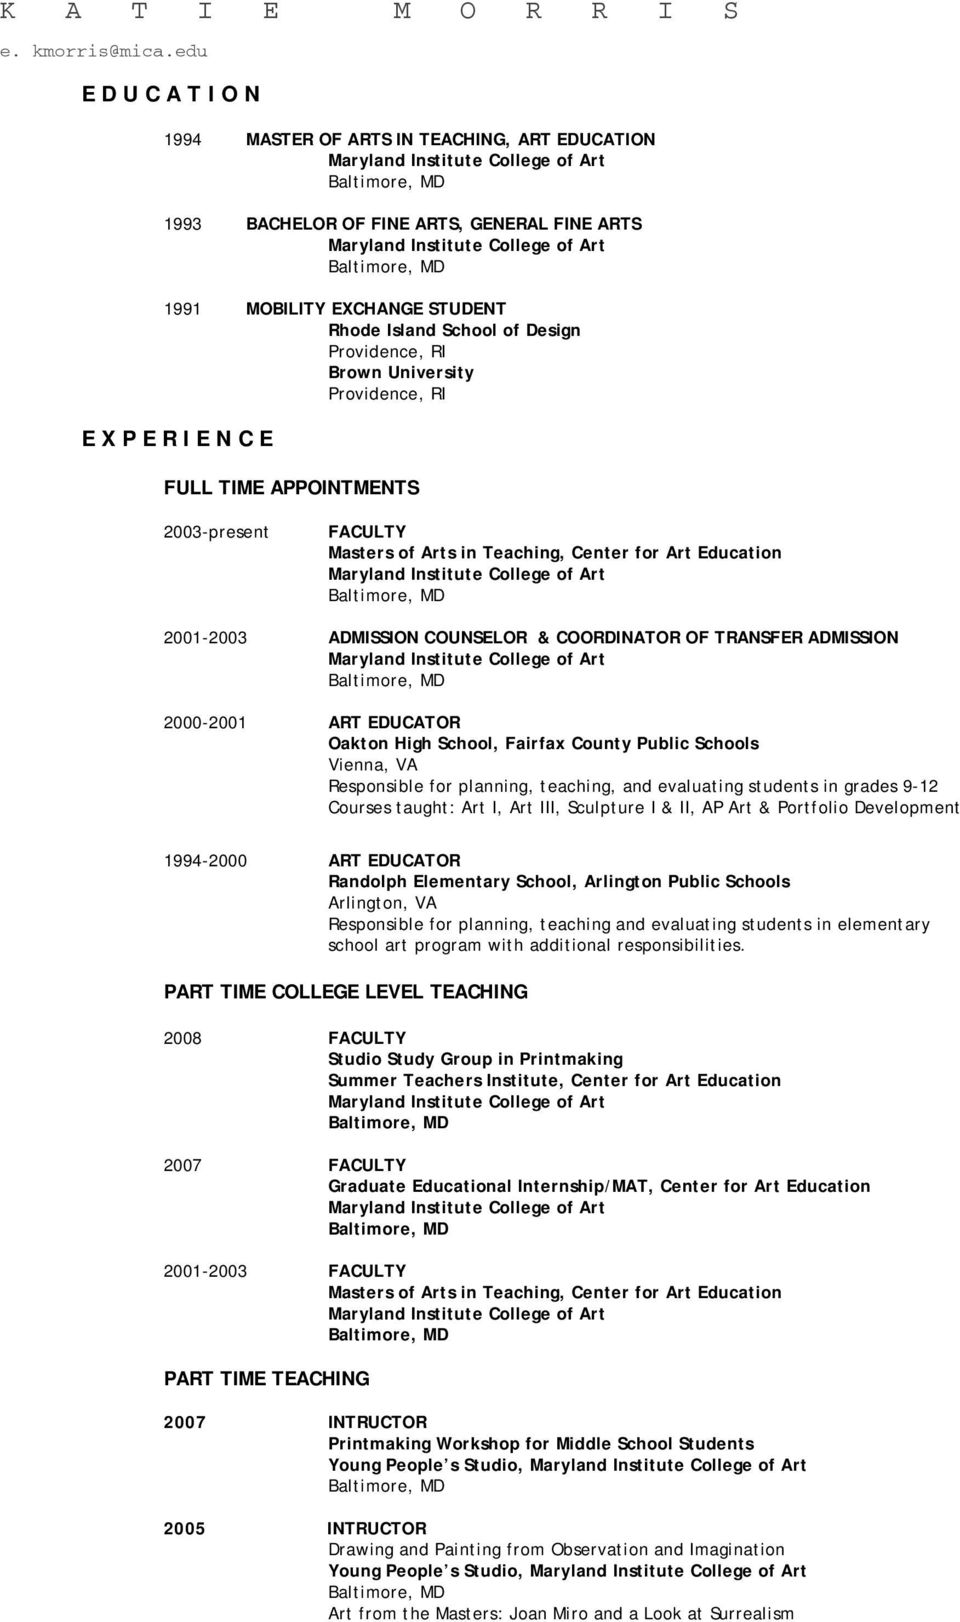 University Providence, RI E X P E R I E N C E FULL TIME APPOINTMENTS 2003-present FACULTY Masters of Arts in Teaching, Center for Art Education 2001-2003 ADMISSION COUNSELOR & COORDINATOR OF TRANSFER